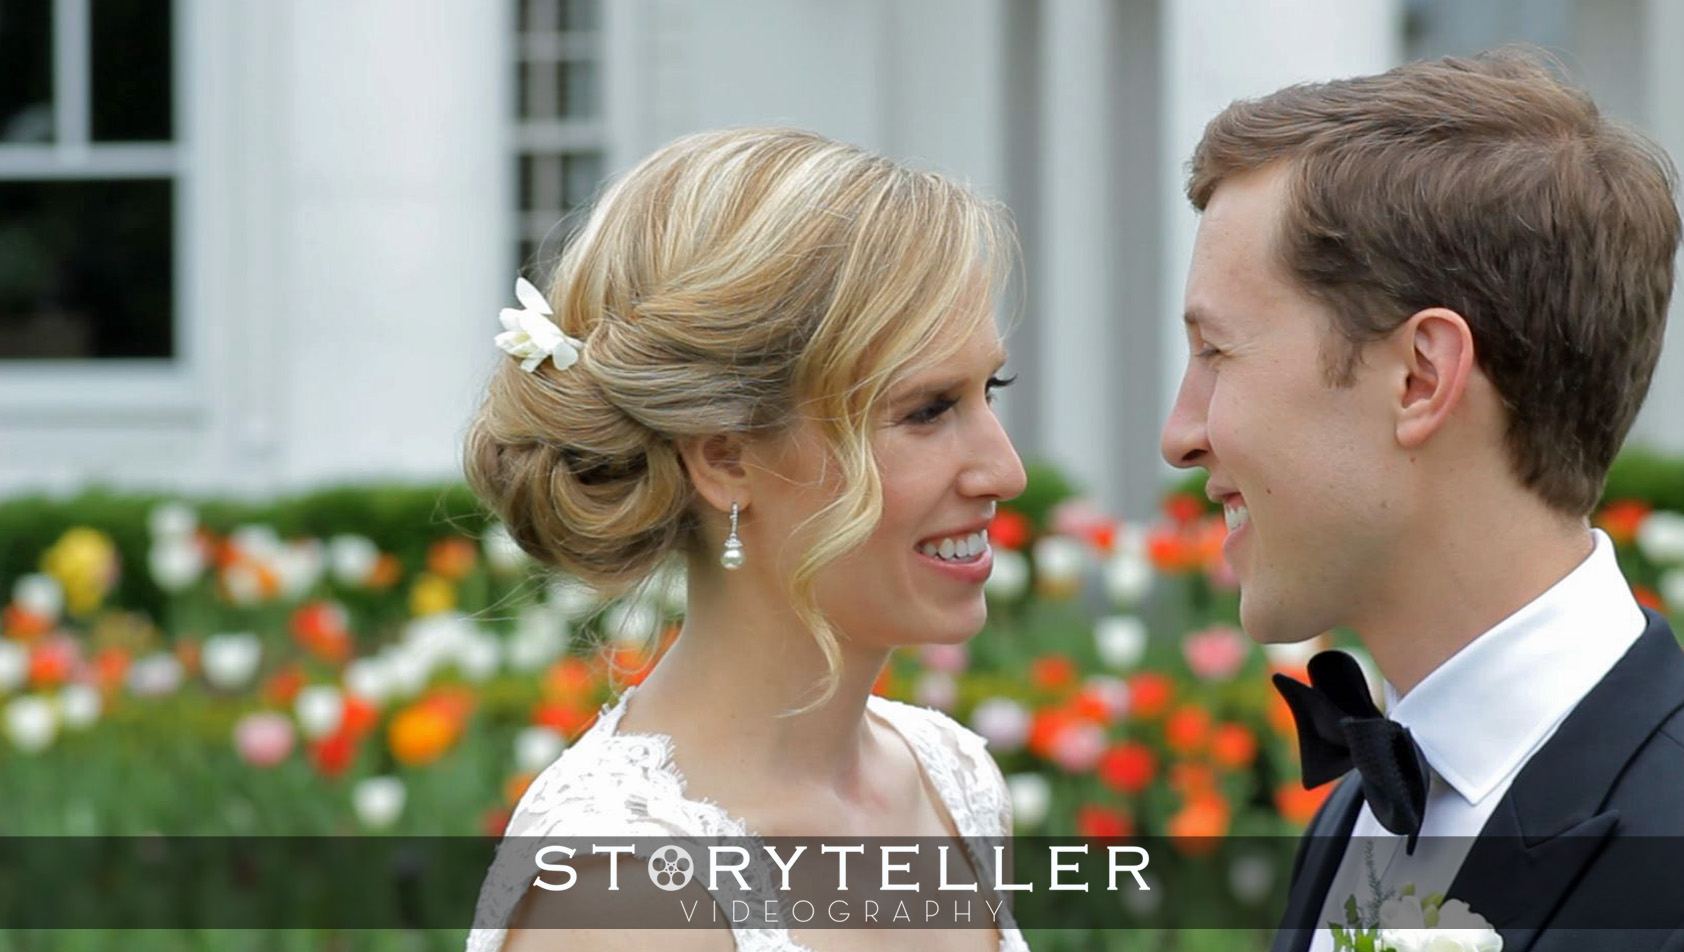 Videography Frame Minnesota Wedding Couple Rj And Kaitlyn In